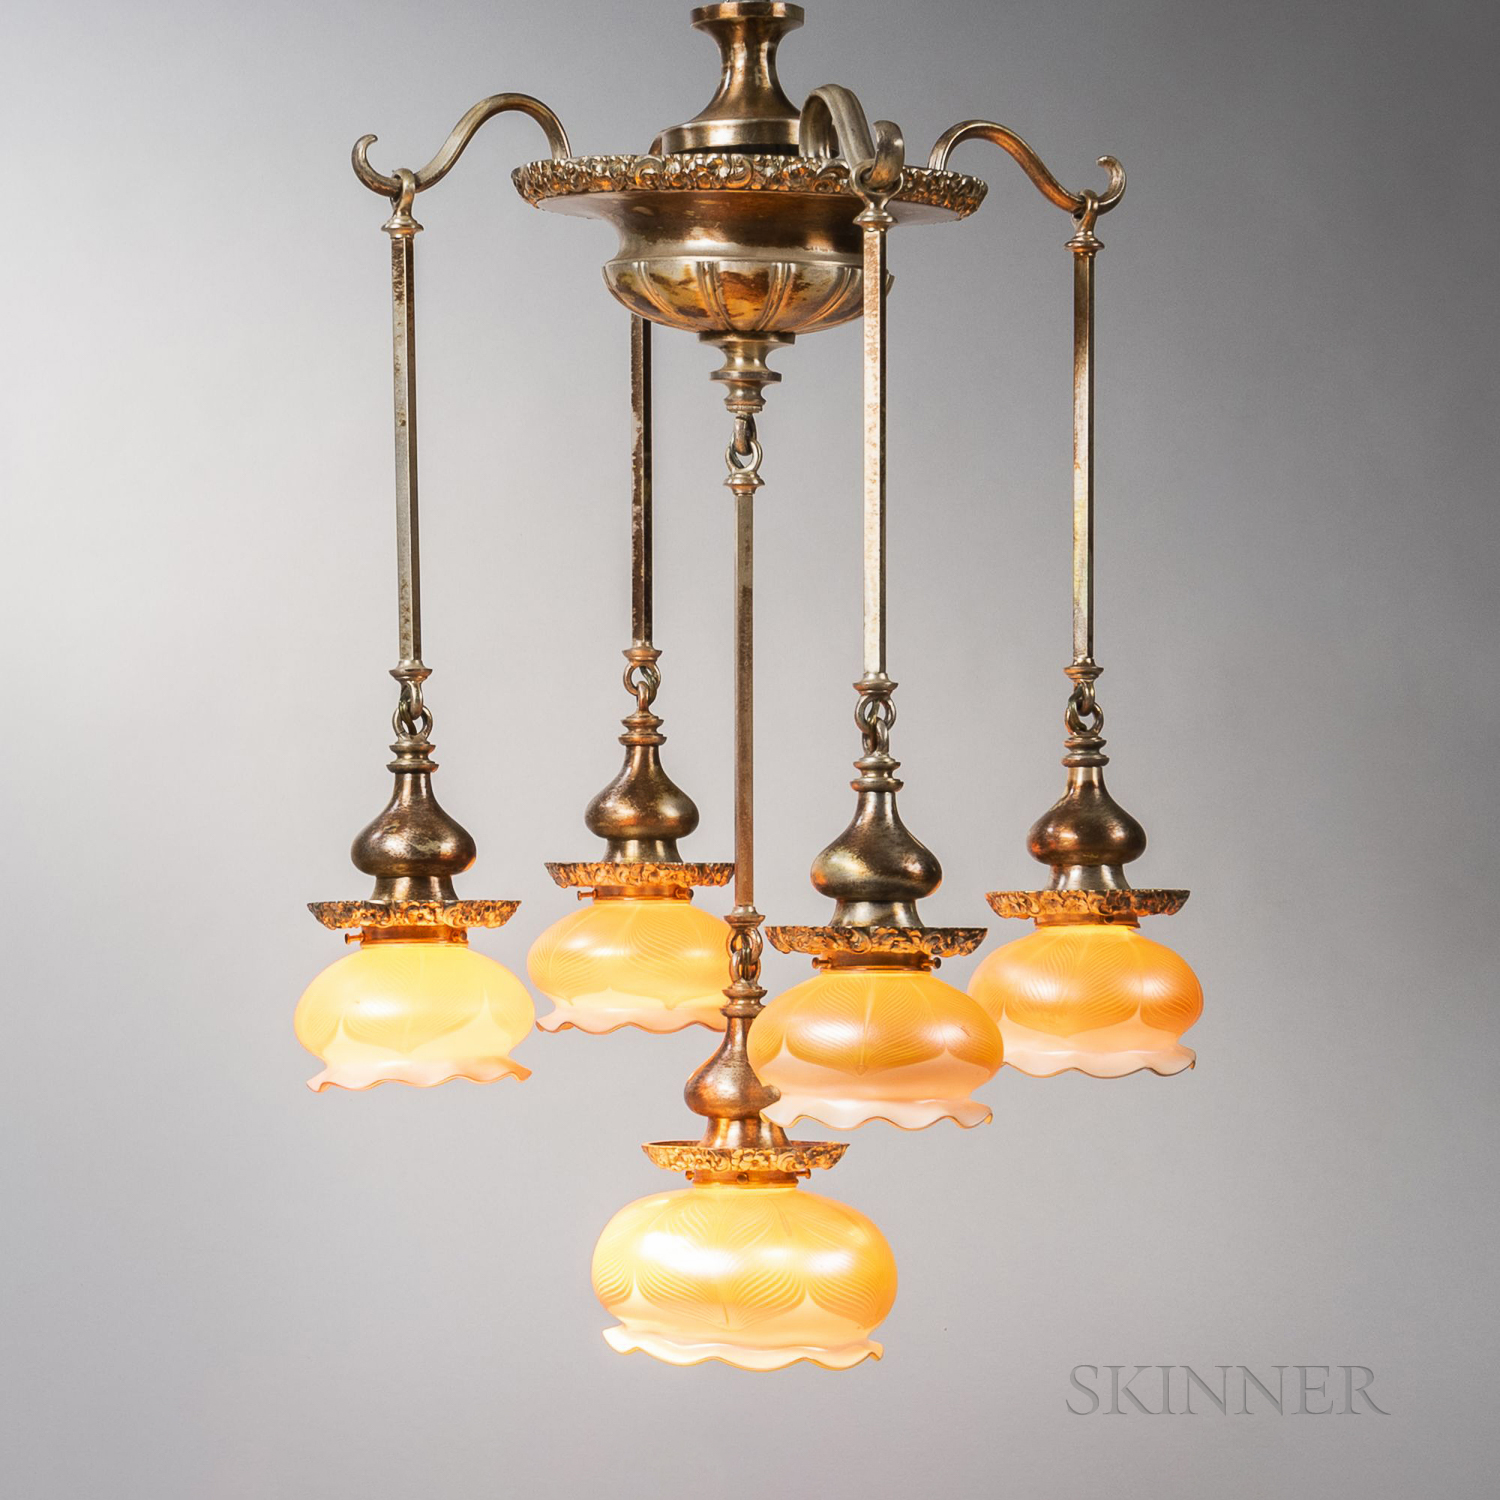 Art Nouveau Silvered Chandelier with Quezal Shades